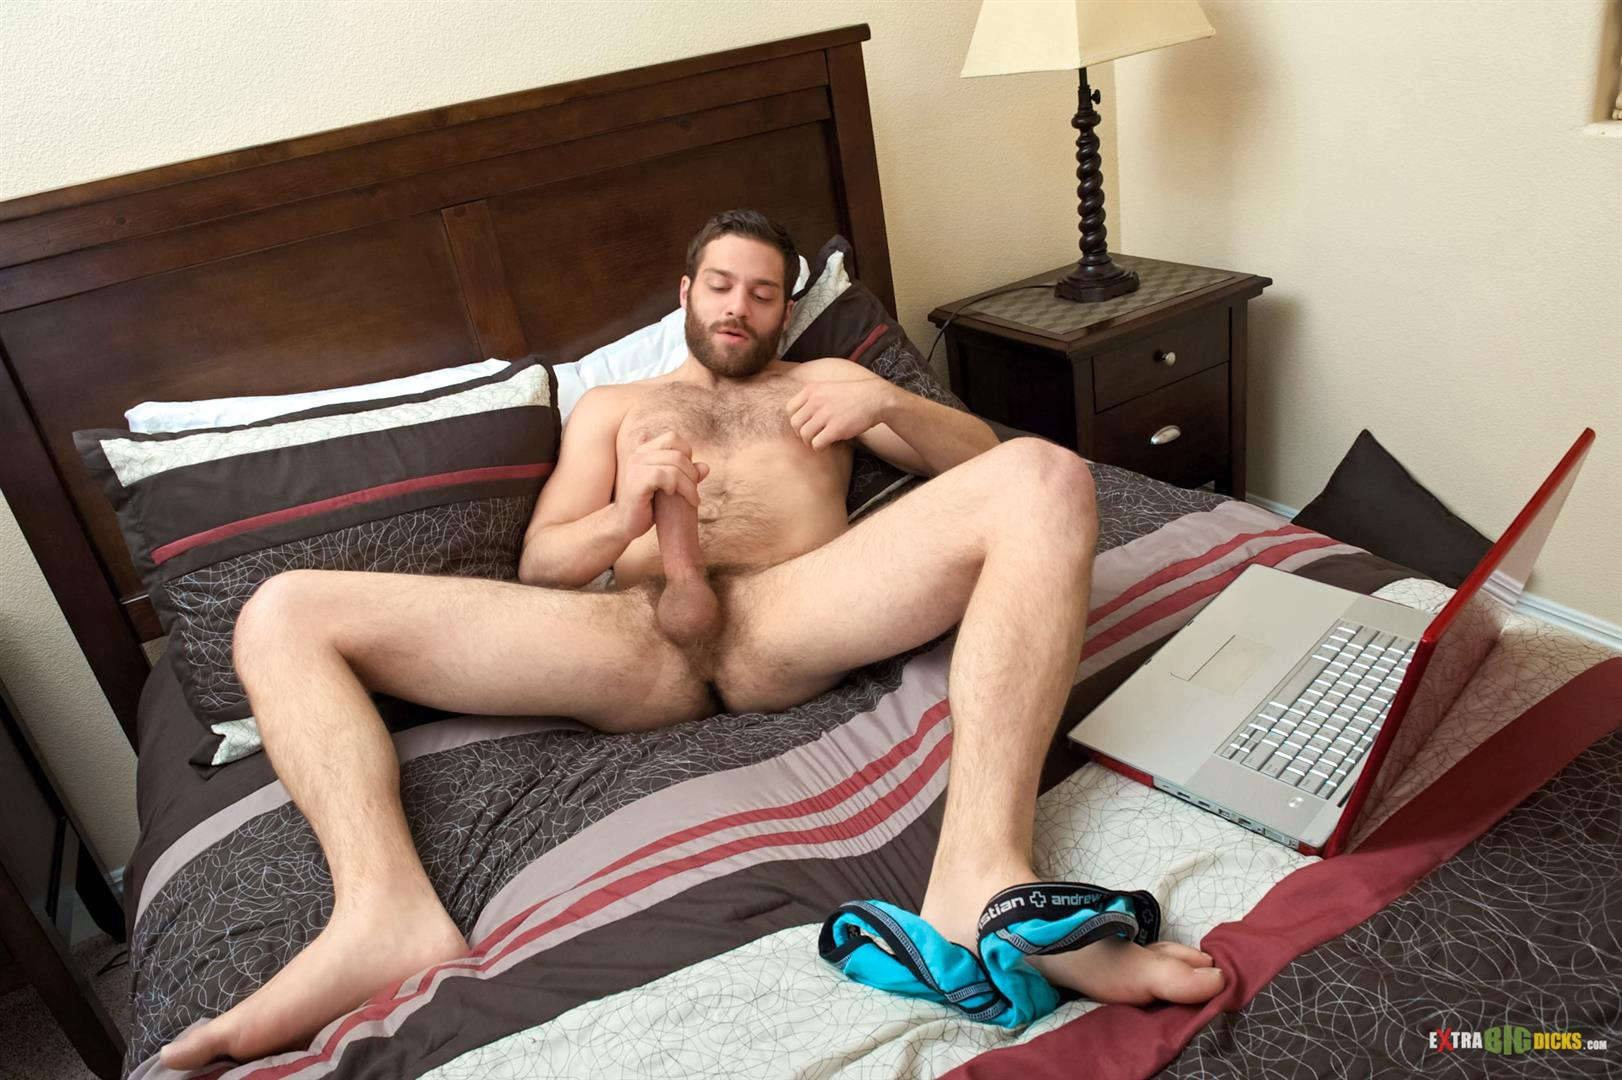 Extra-Big-Dicks-Tommy-Defendi-Hairy-Muscle-Guy-Jerking-Off-Amateur-Gay-Porn-07 Hairy Muscle Stud Tommy Defendi Jerking Off His Big Thick Cock